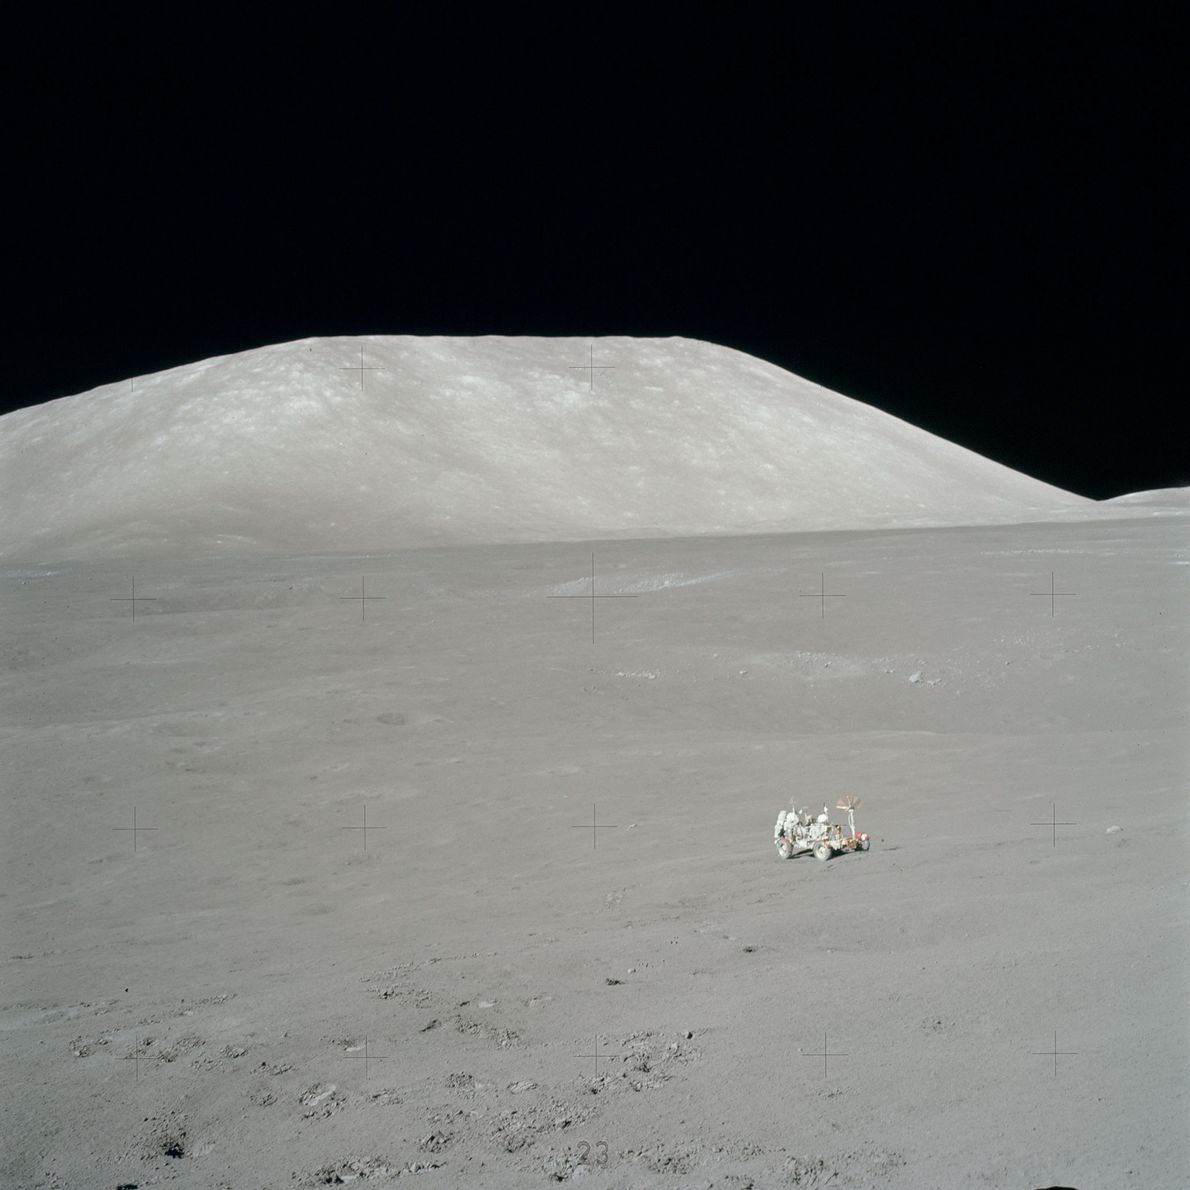 NASA designed the Lunar Roving Vehicle to operate in low gravity and allow the astronauts to ...